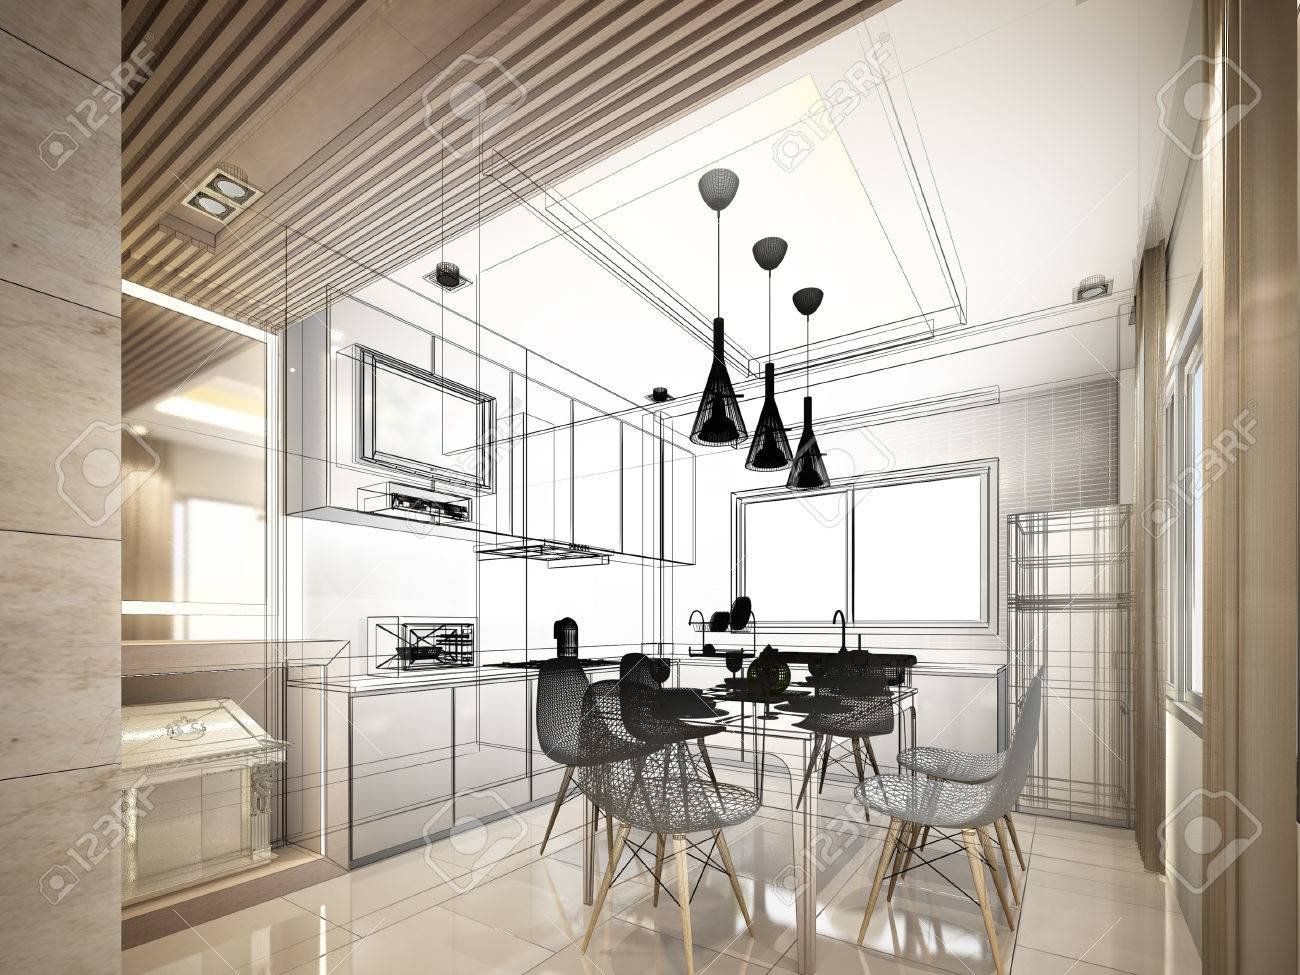 Abstract Sketch Design Of Interior Kitchen Stock Photo Picture And